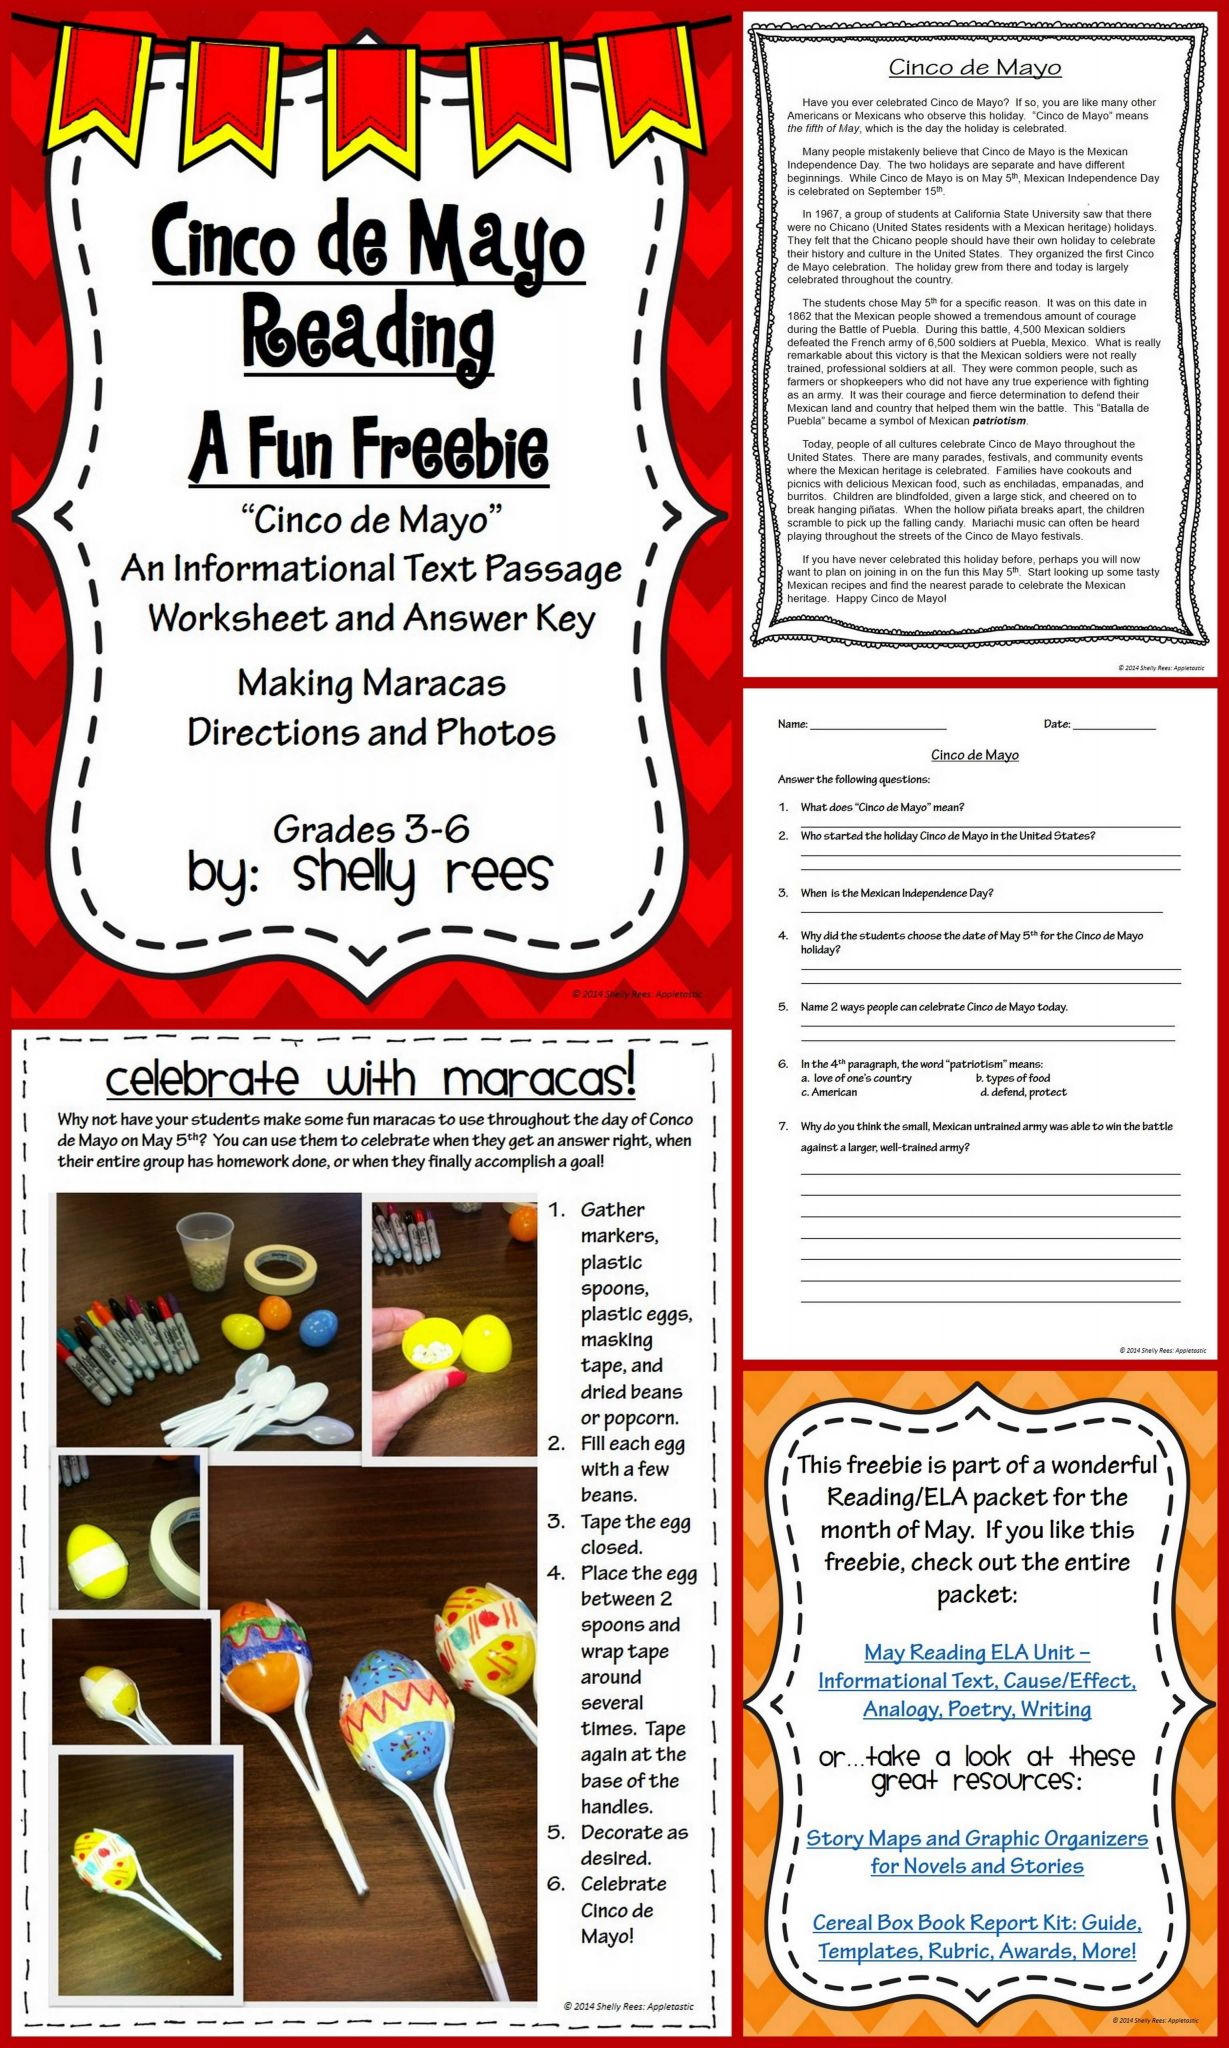 The History Of Life On Earth Worksheet Answers Along with Cinco De Mayo Free Informational Text Passage for Grades 3 6